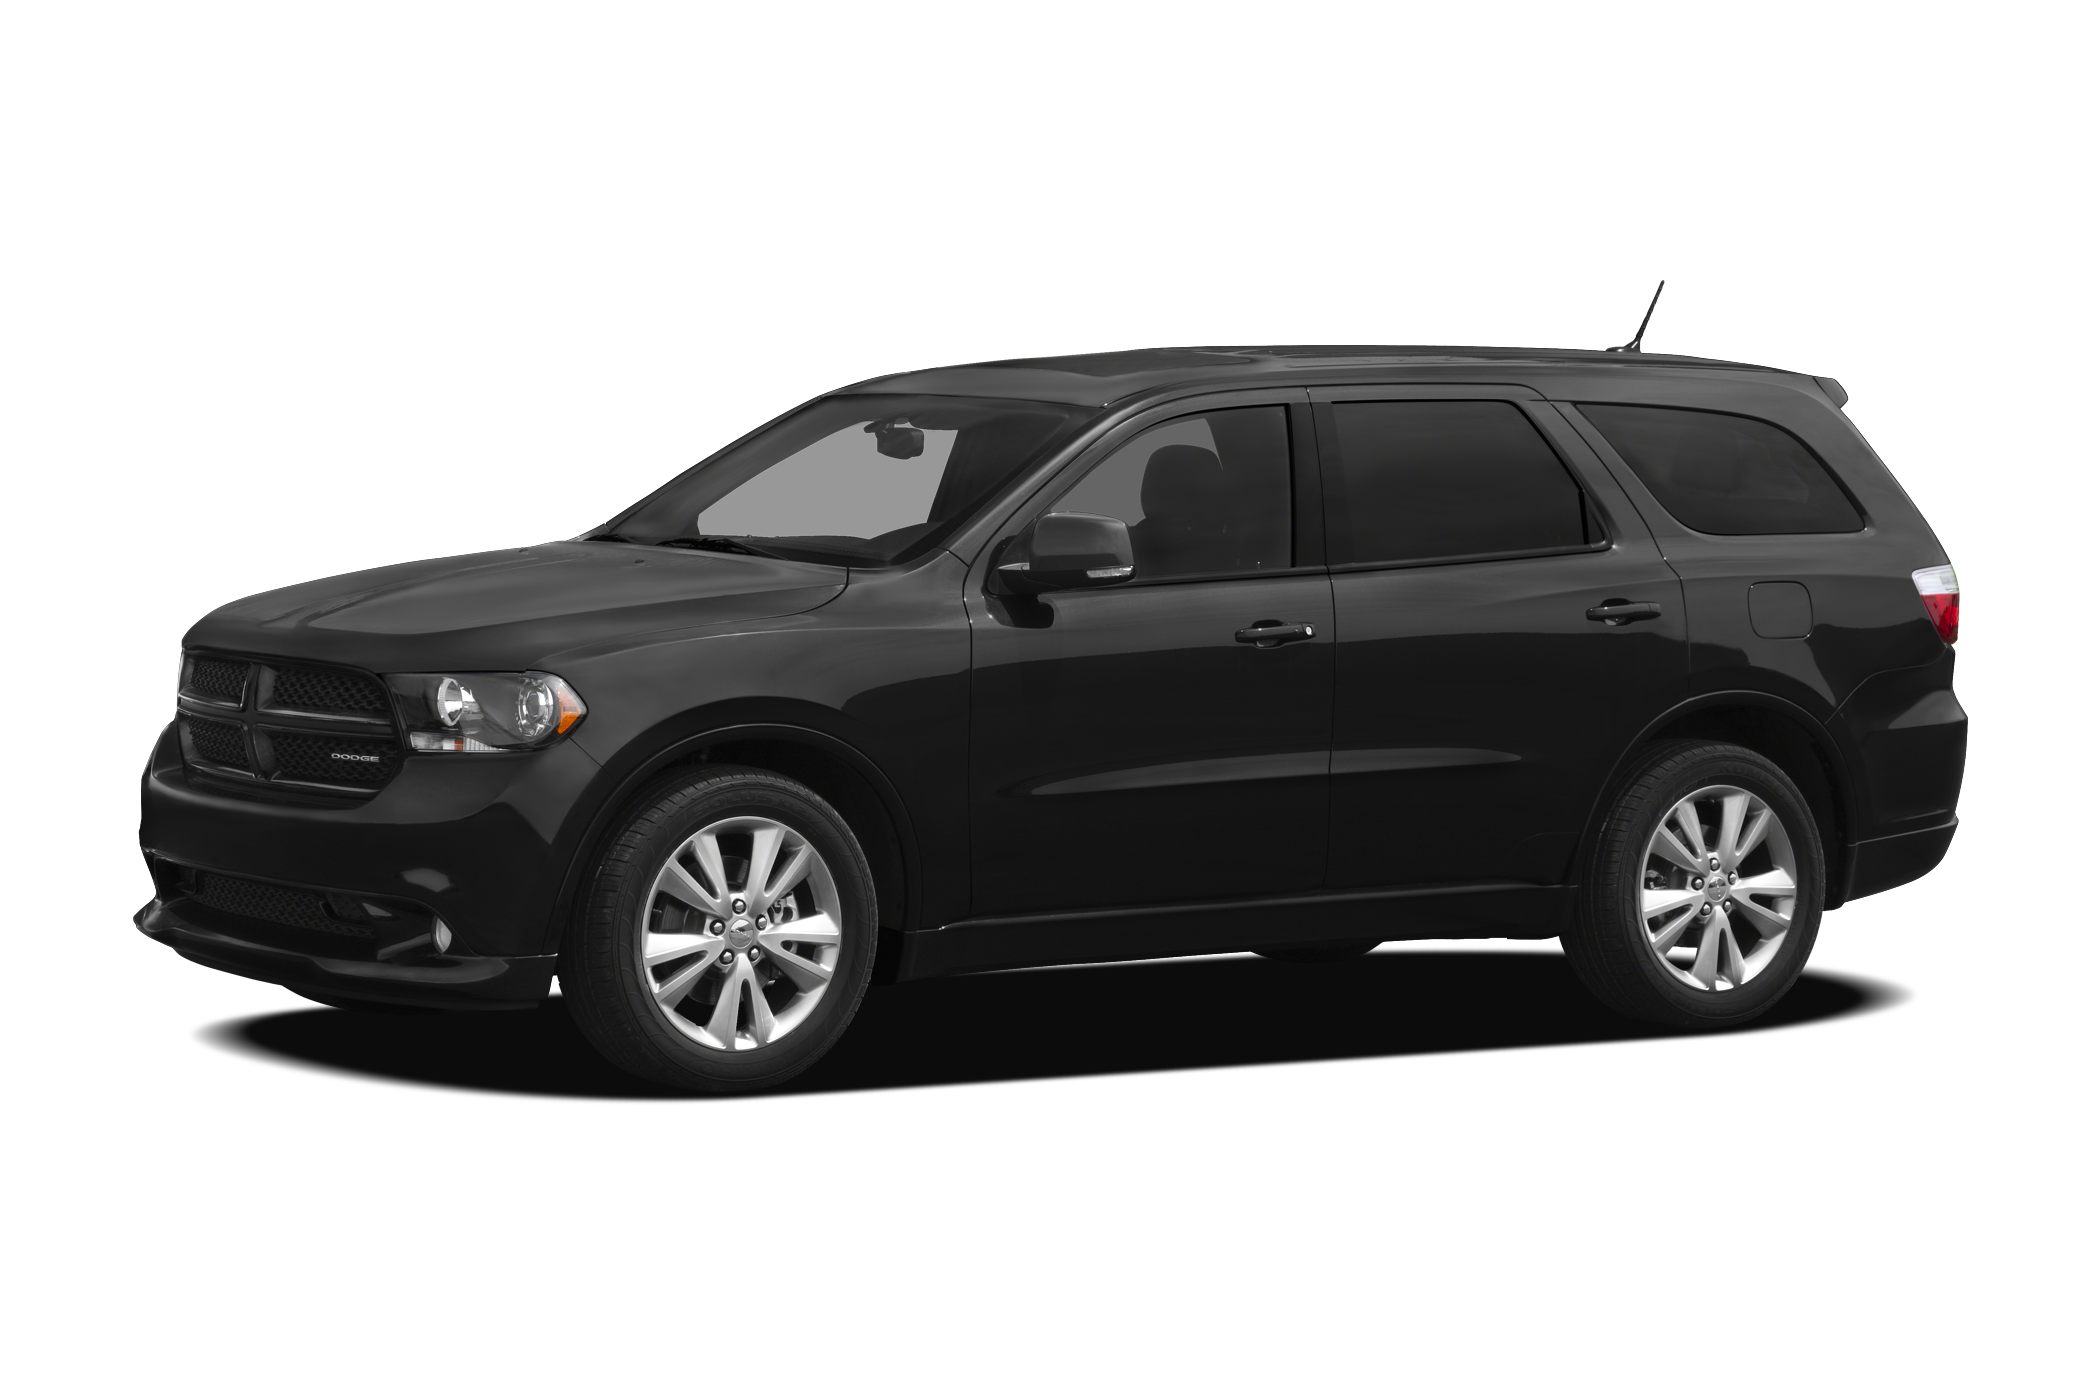 2012 Dodge Durango RT DISCLAIMER We are excited to offer this vehicle to you but it is currently